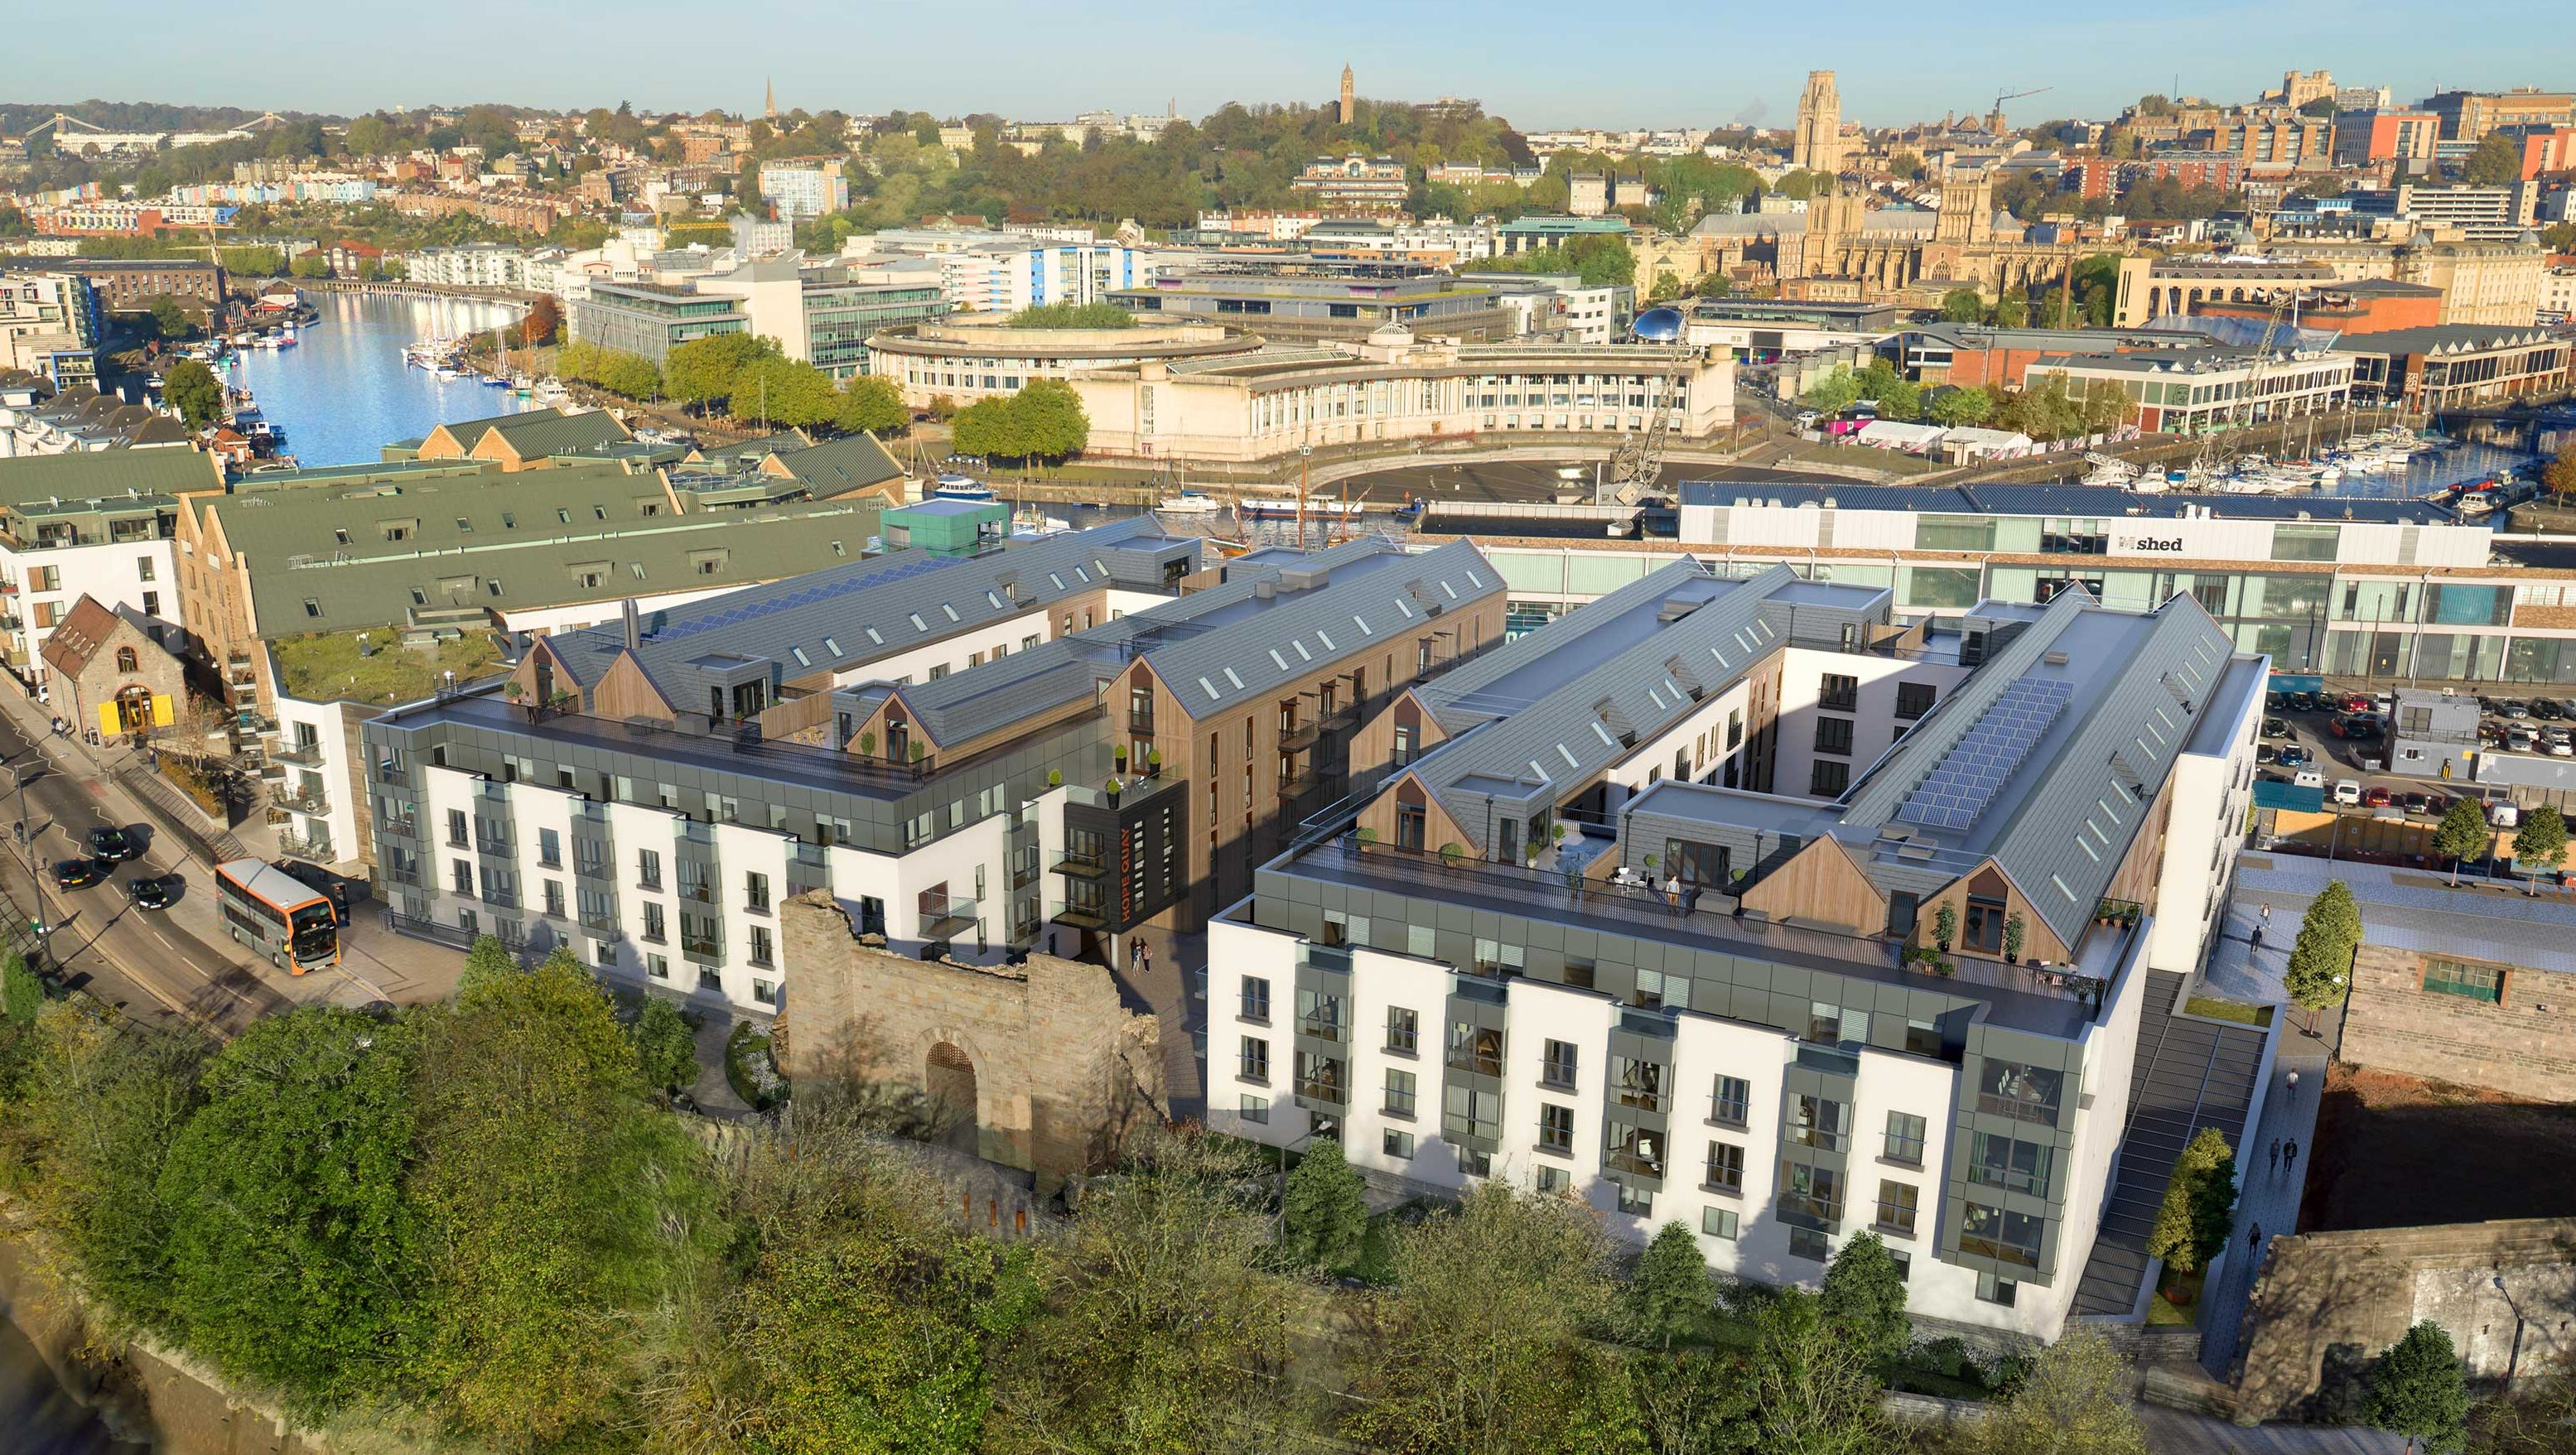 new homes at wapping wharf